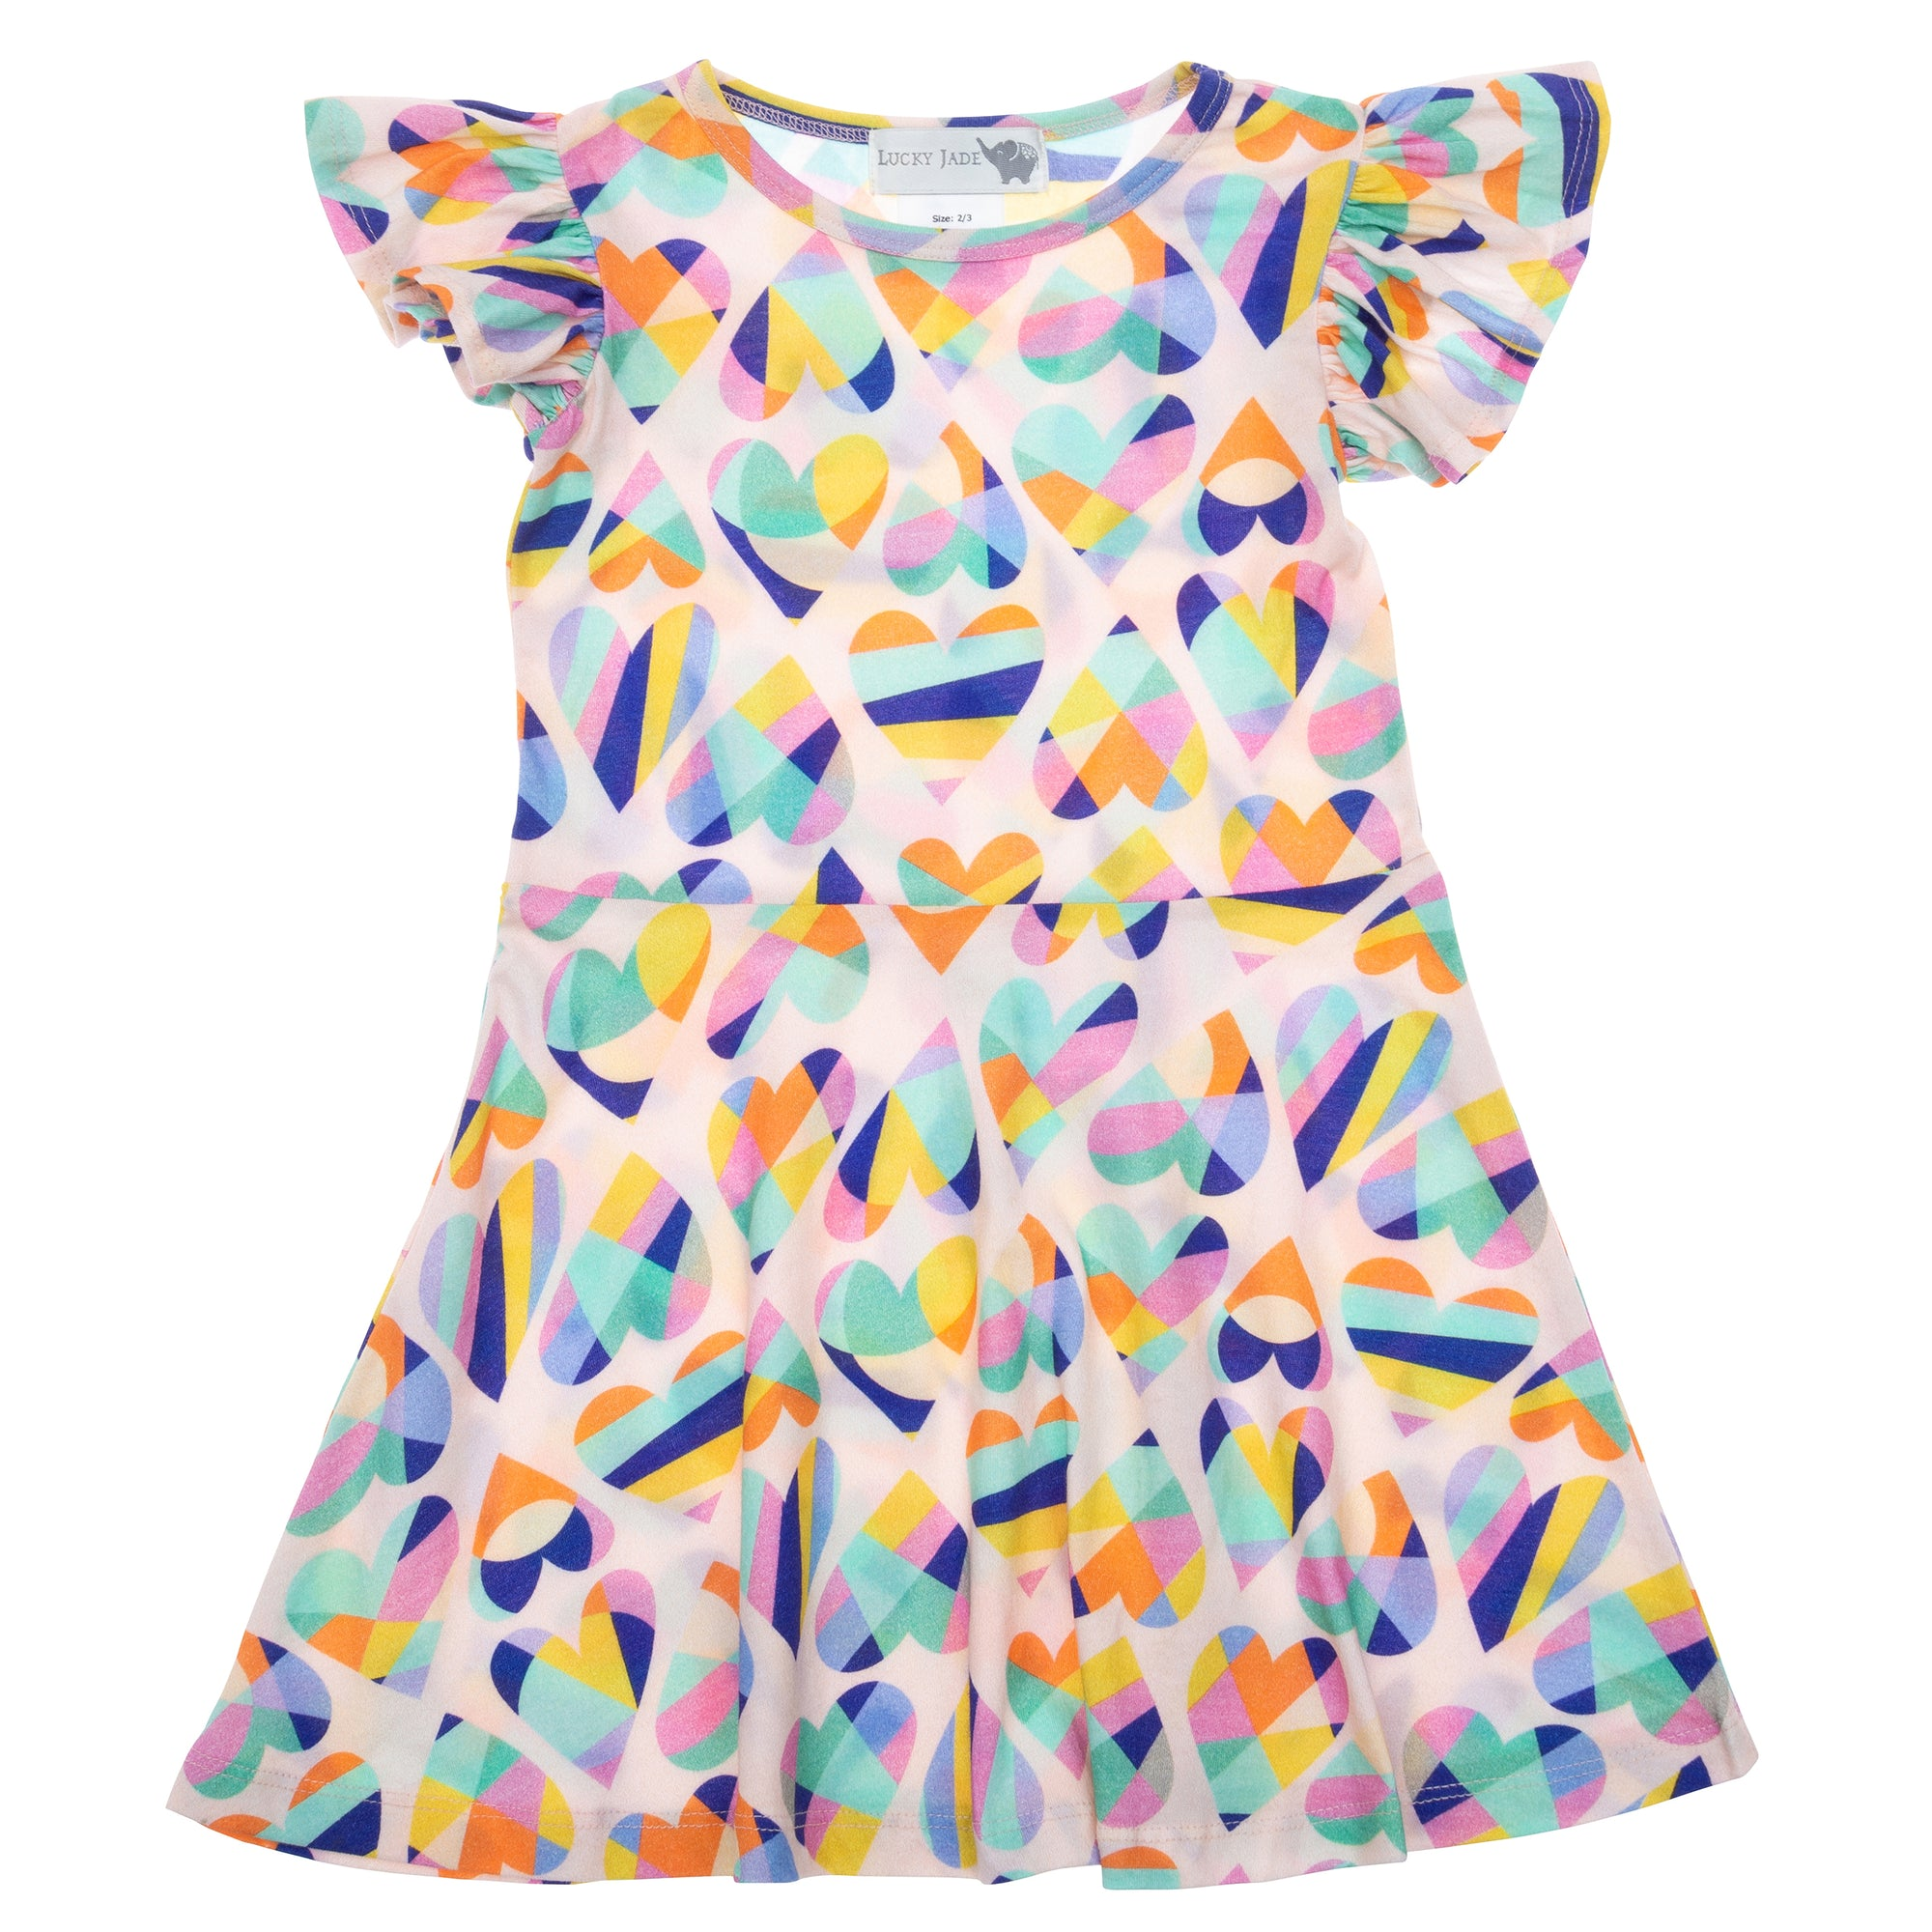 hearts cotton flutter sleeve dress with bright color  geometric hearts